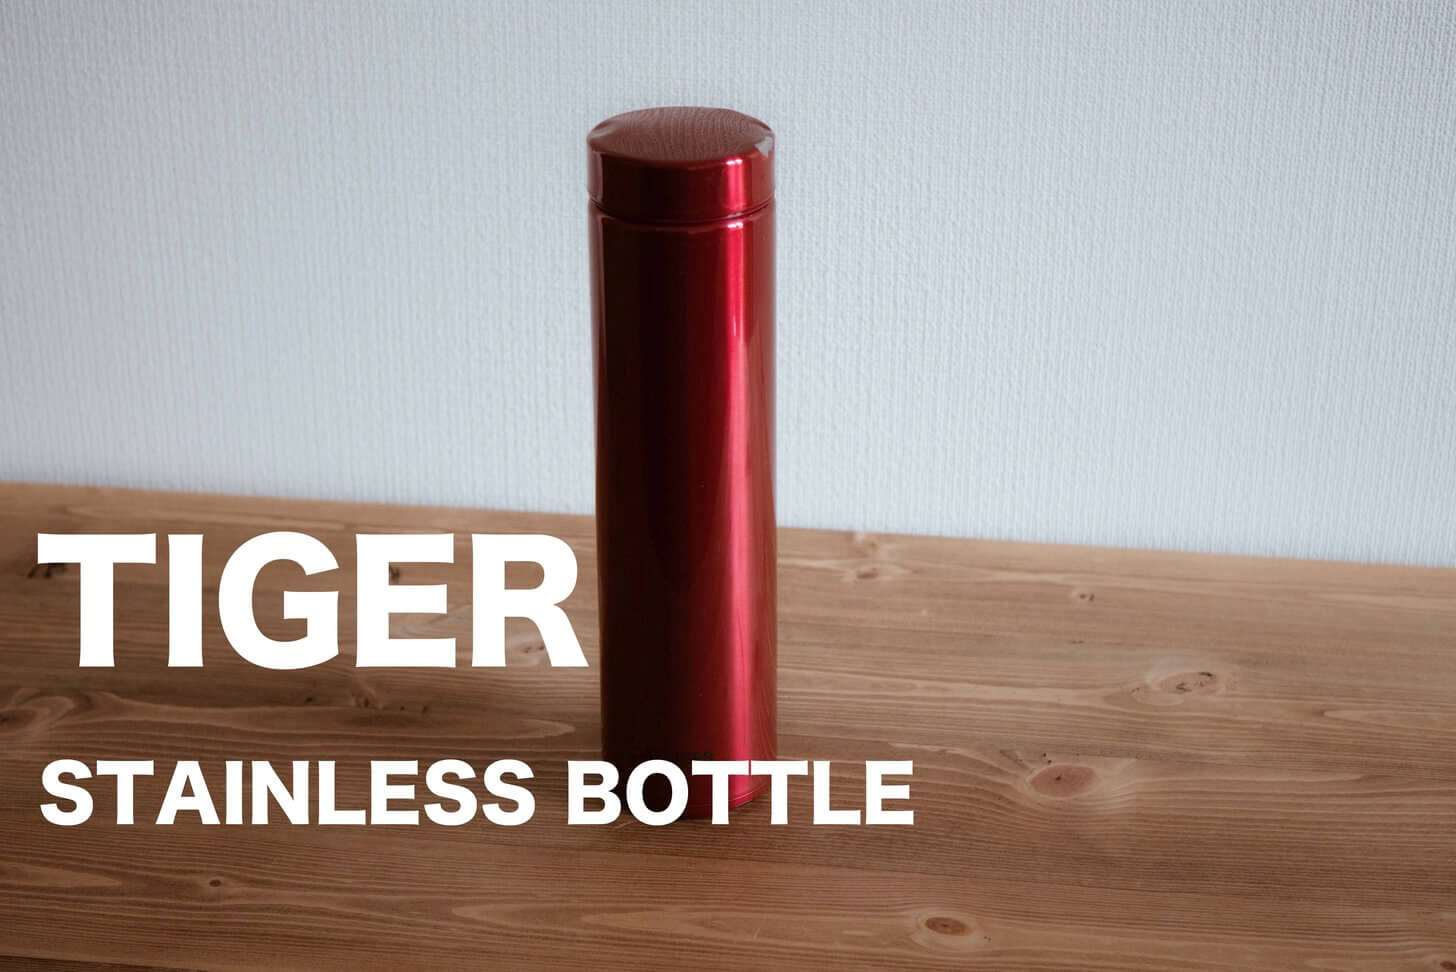 Tiger stainless bottle1